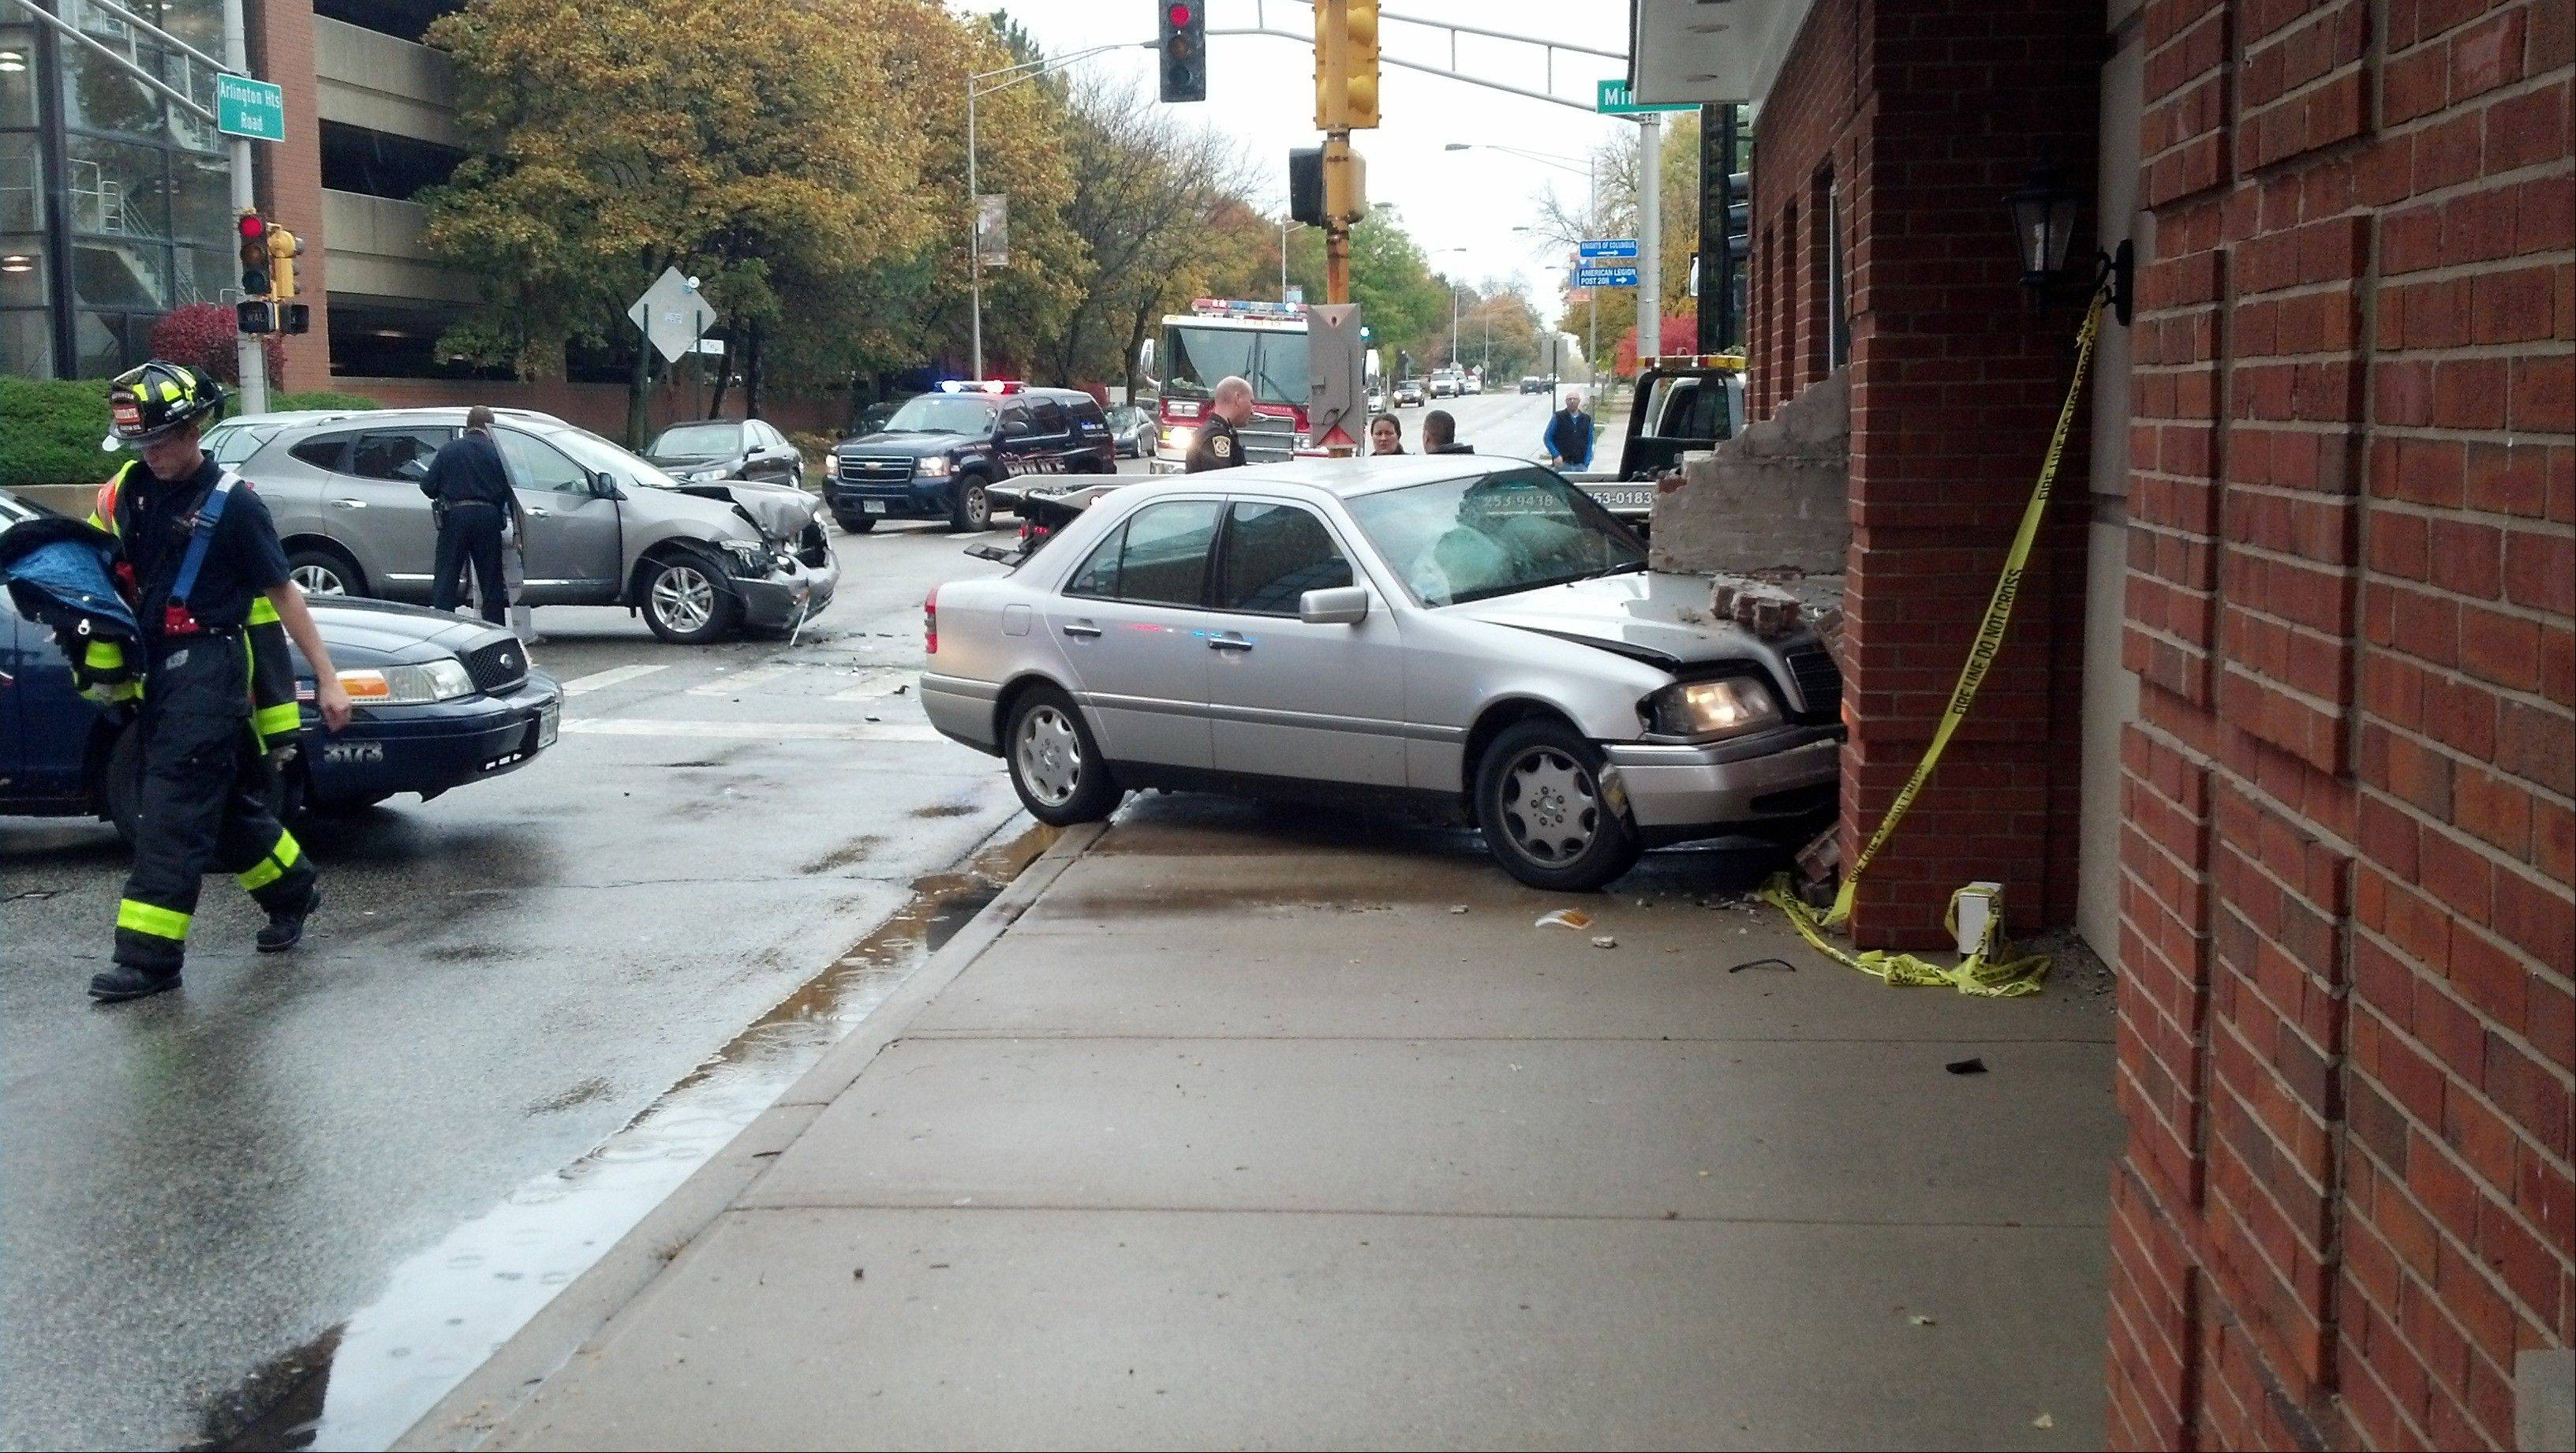 A car crashed into a building Thursday morning in Arlington Heights.